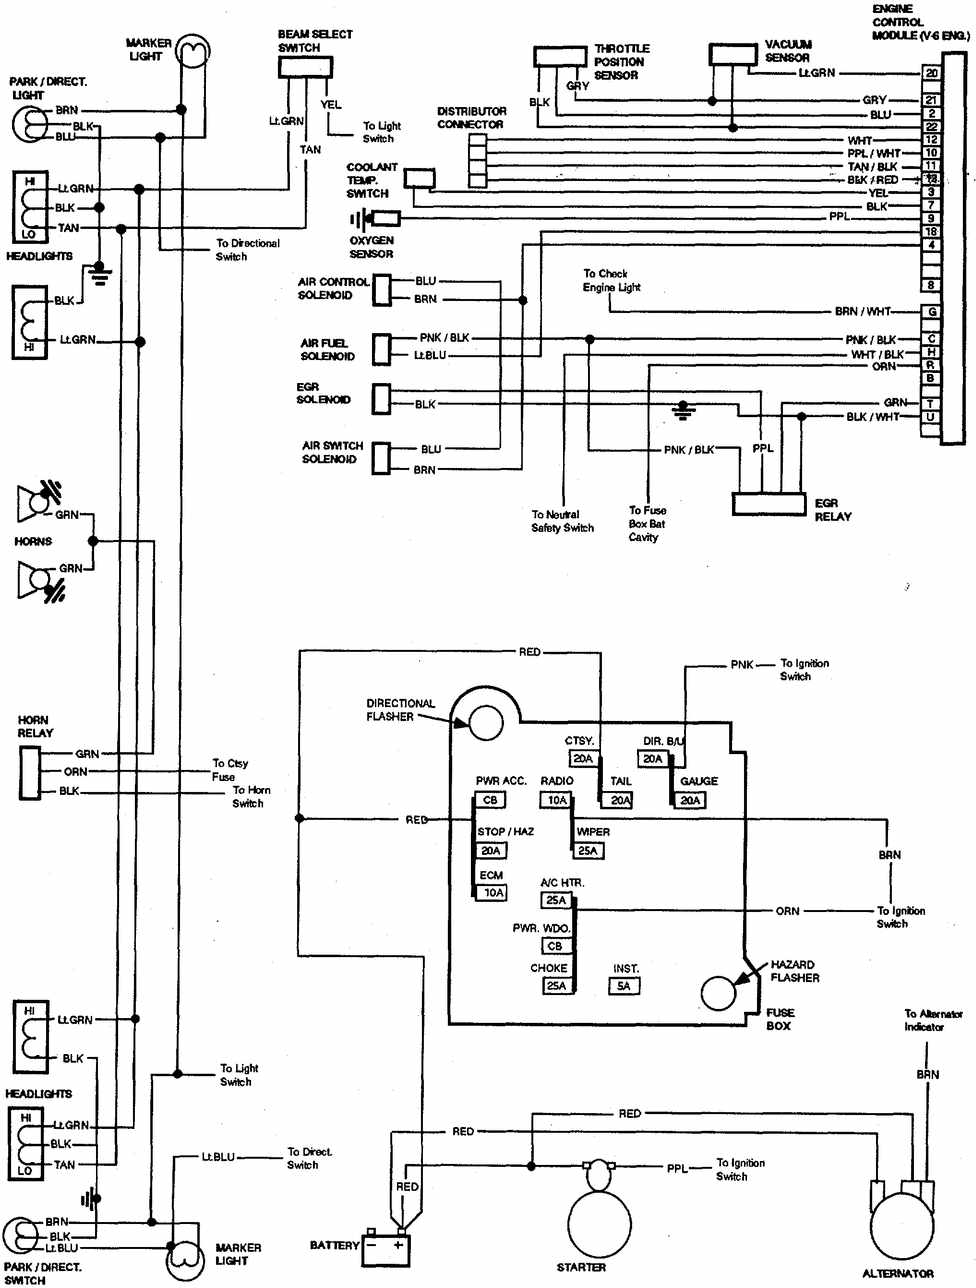 1965 chevrolet truck wiring diagram